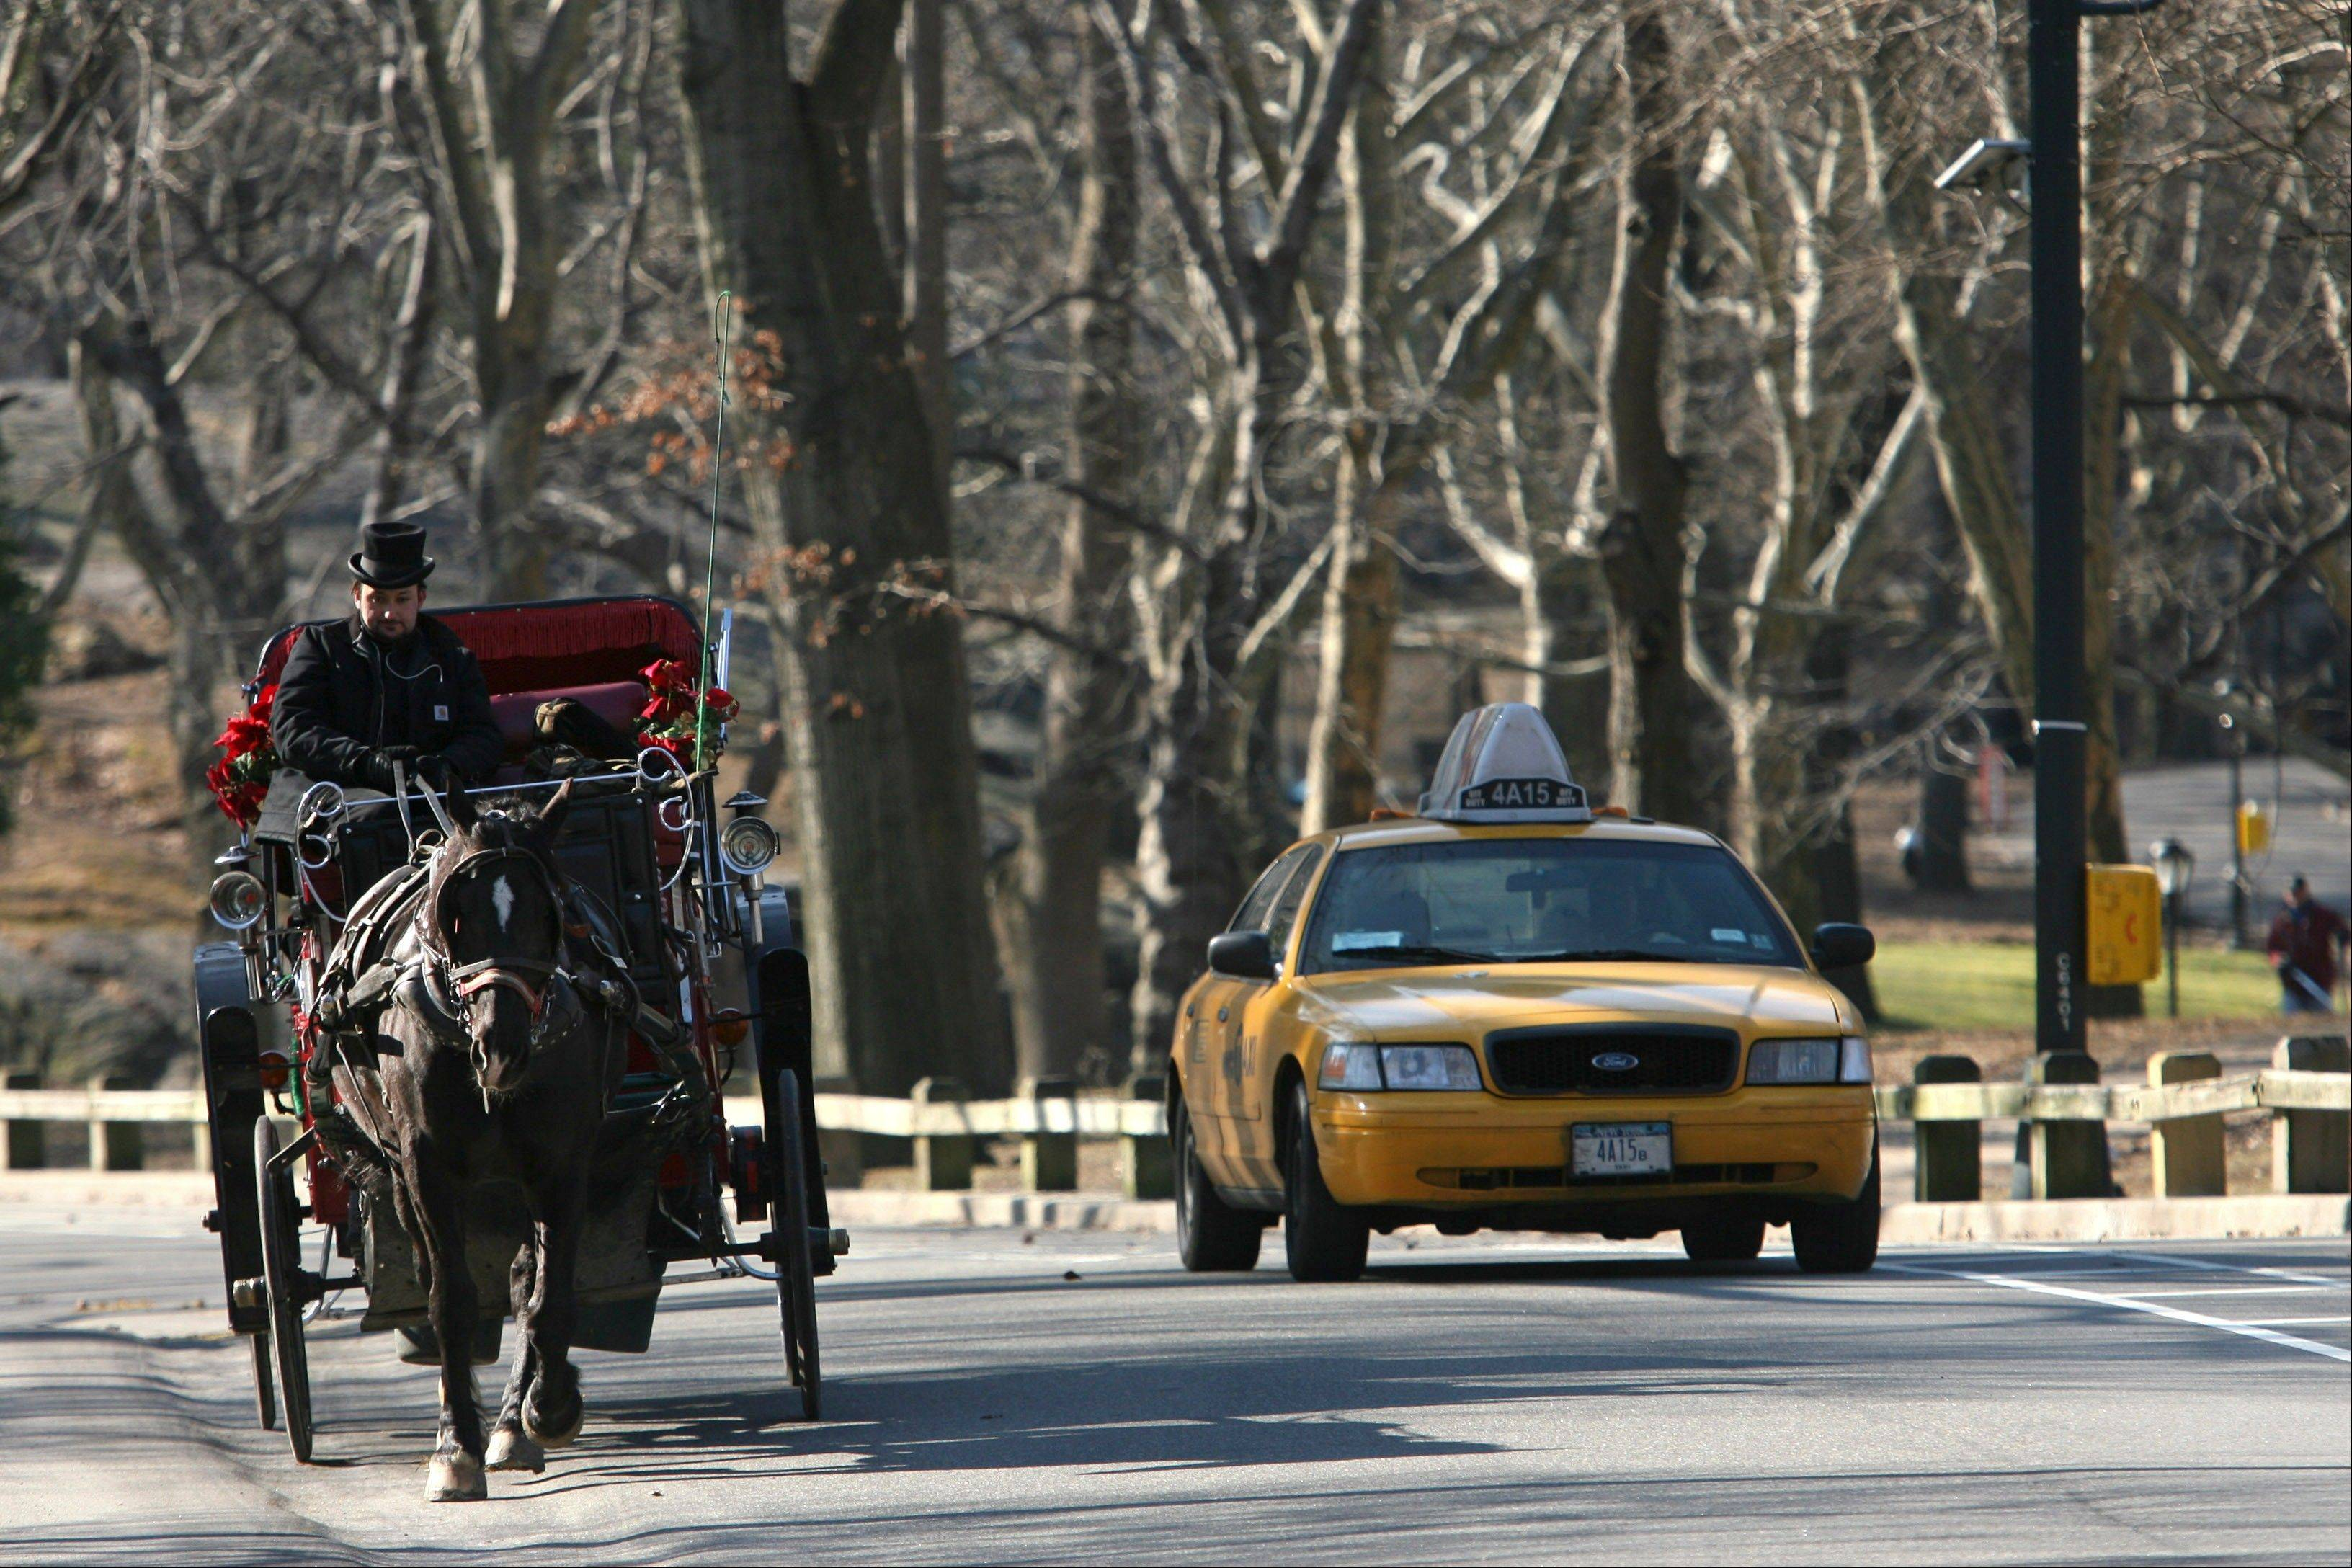 A horse-drawn carriage shares the road with a taxi in New York's Central Park. Bill de Blasio, who is leading in the polls as he is seeking the New York City Mayor�s Office, supports a plan to replace the horses with old-timey electric cars hired to take tourists on slow-speed jaunts around Central Park.